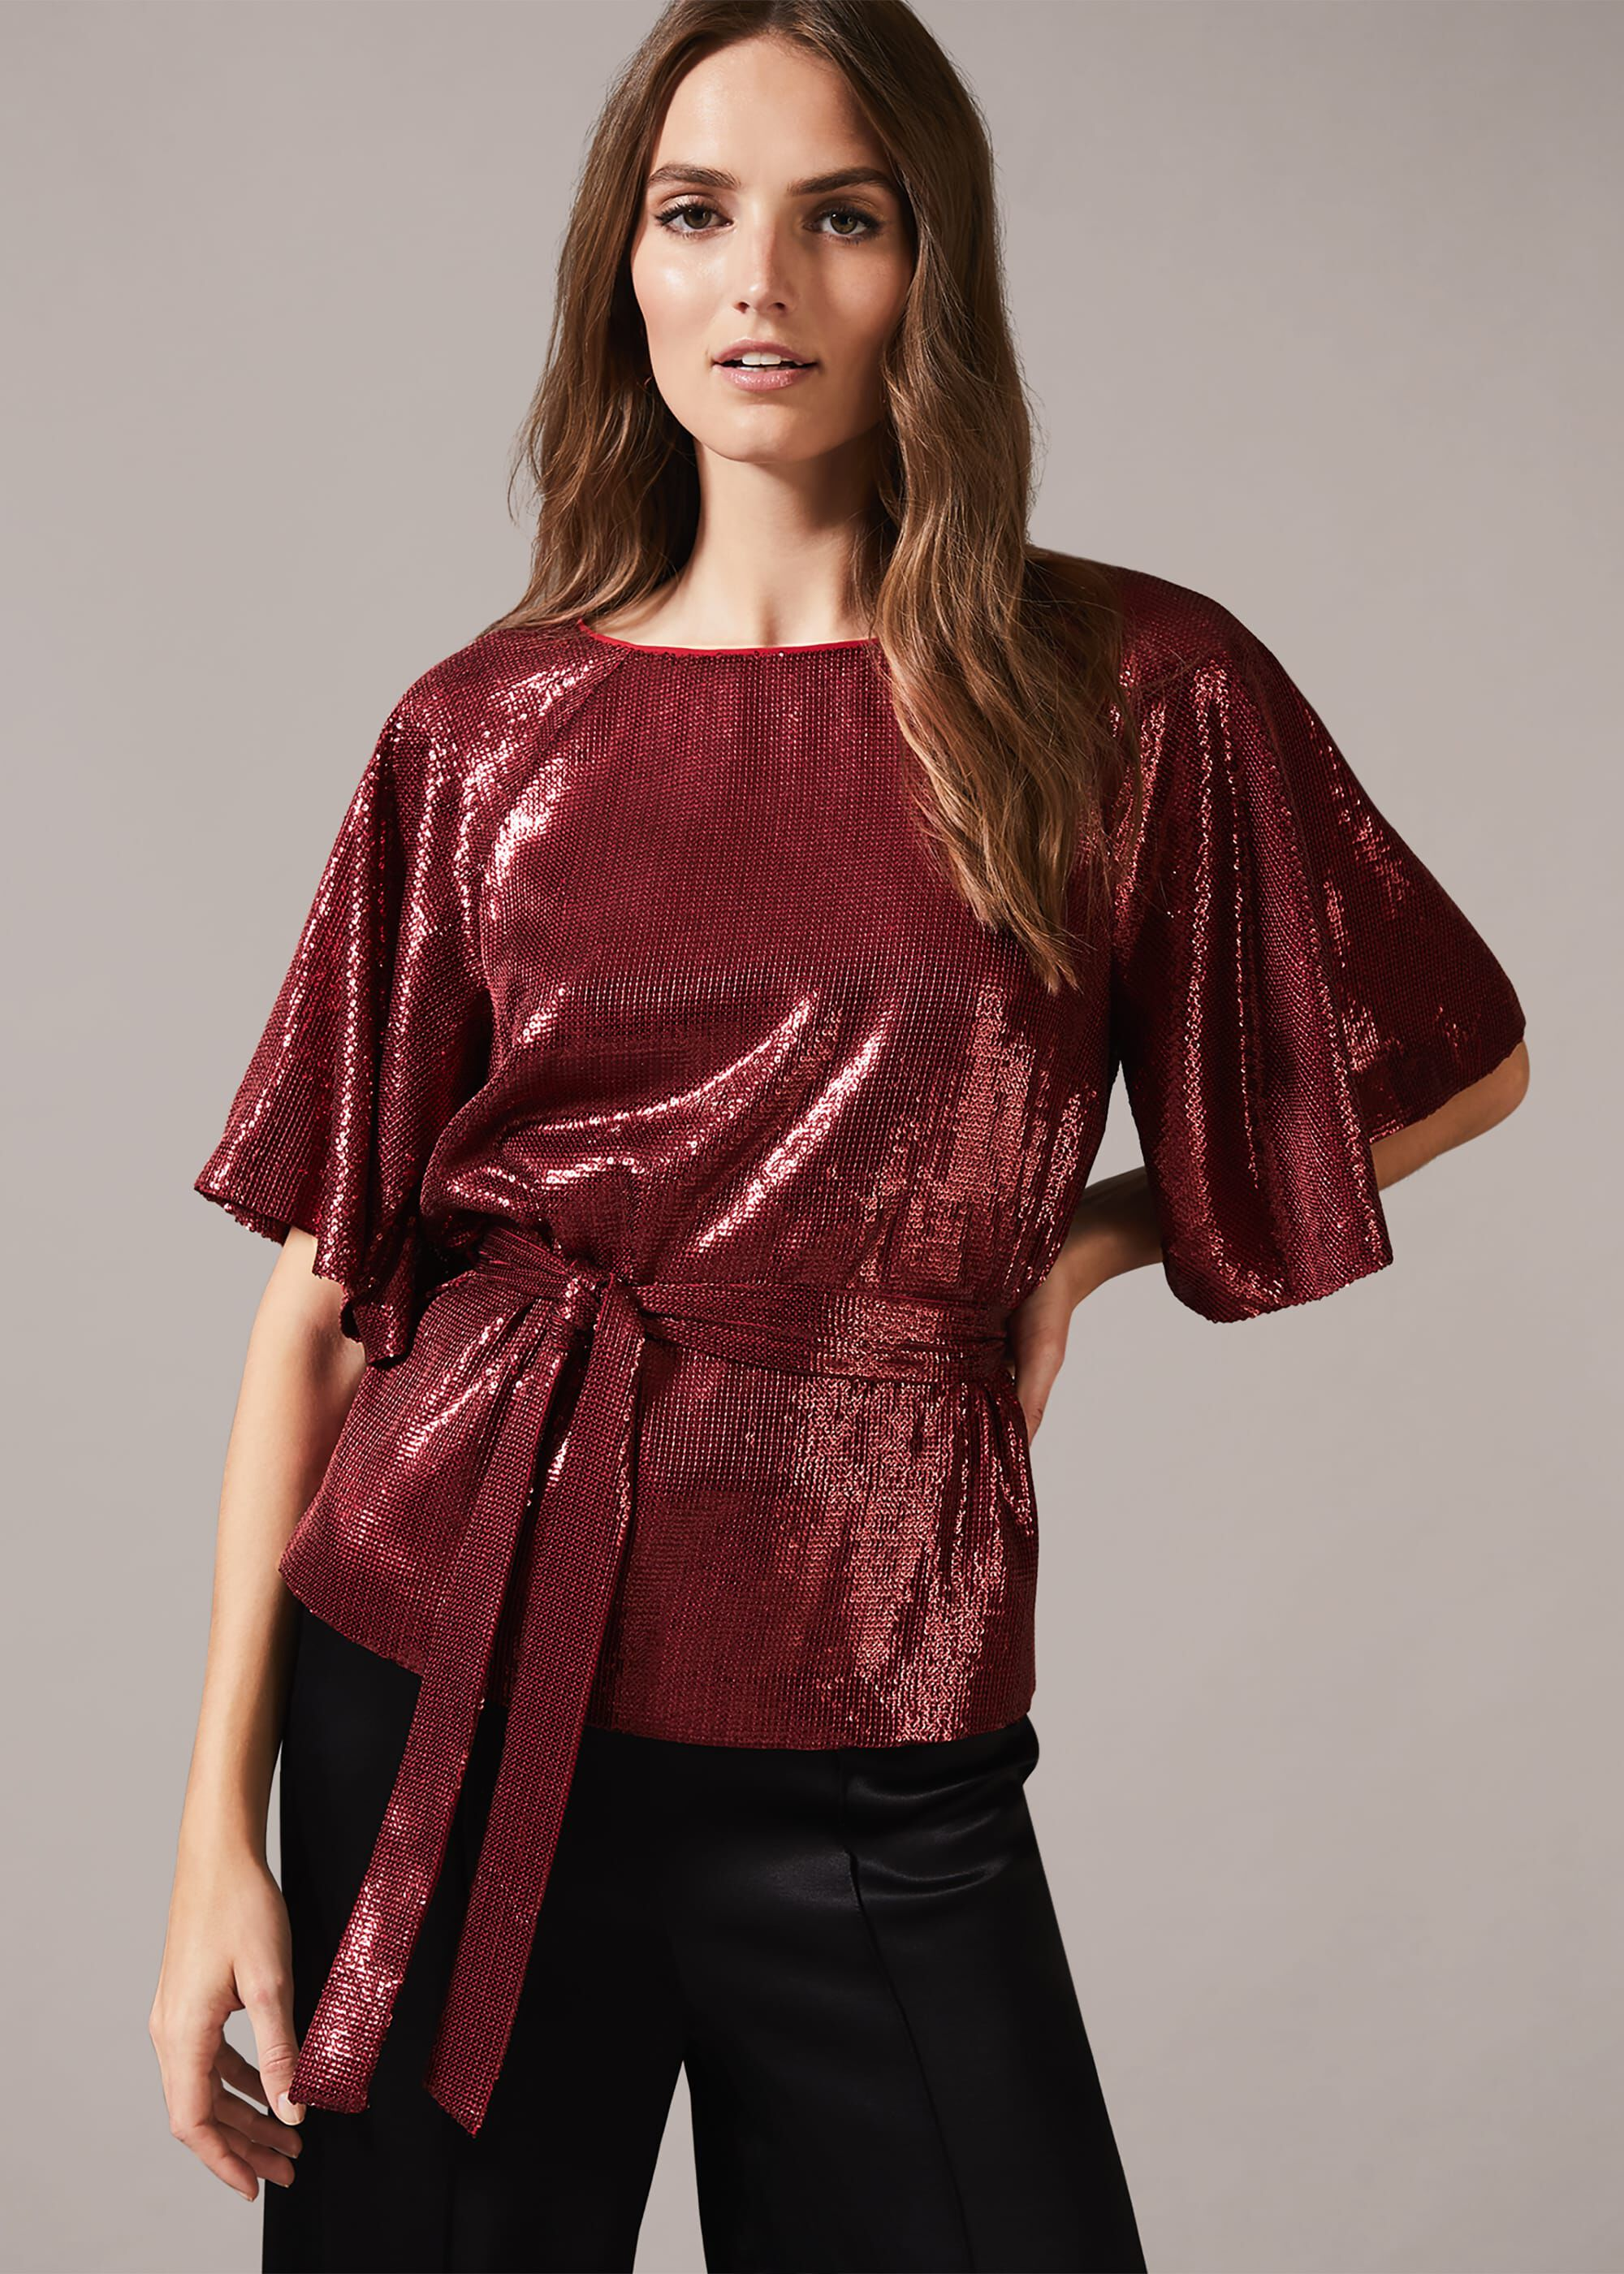 Phase Eight Kiera Sequin Wrap Top, Red, Blouse